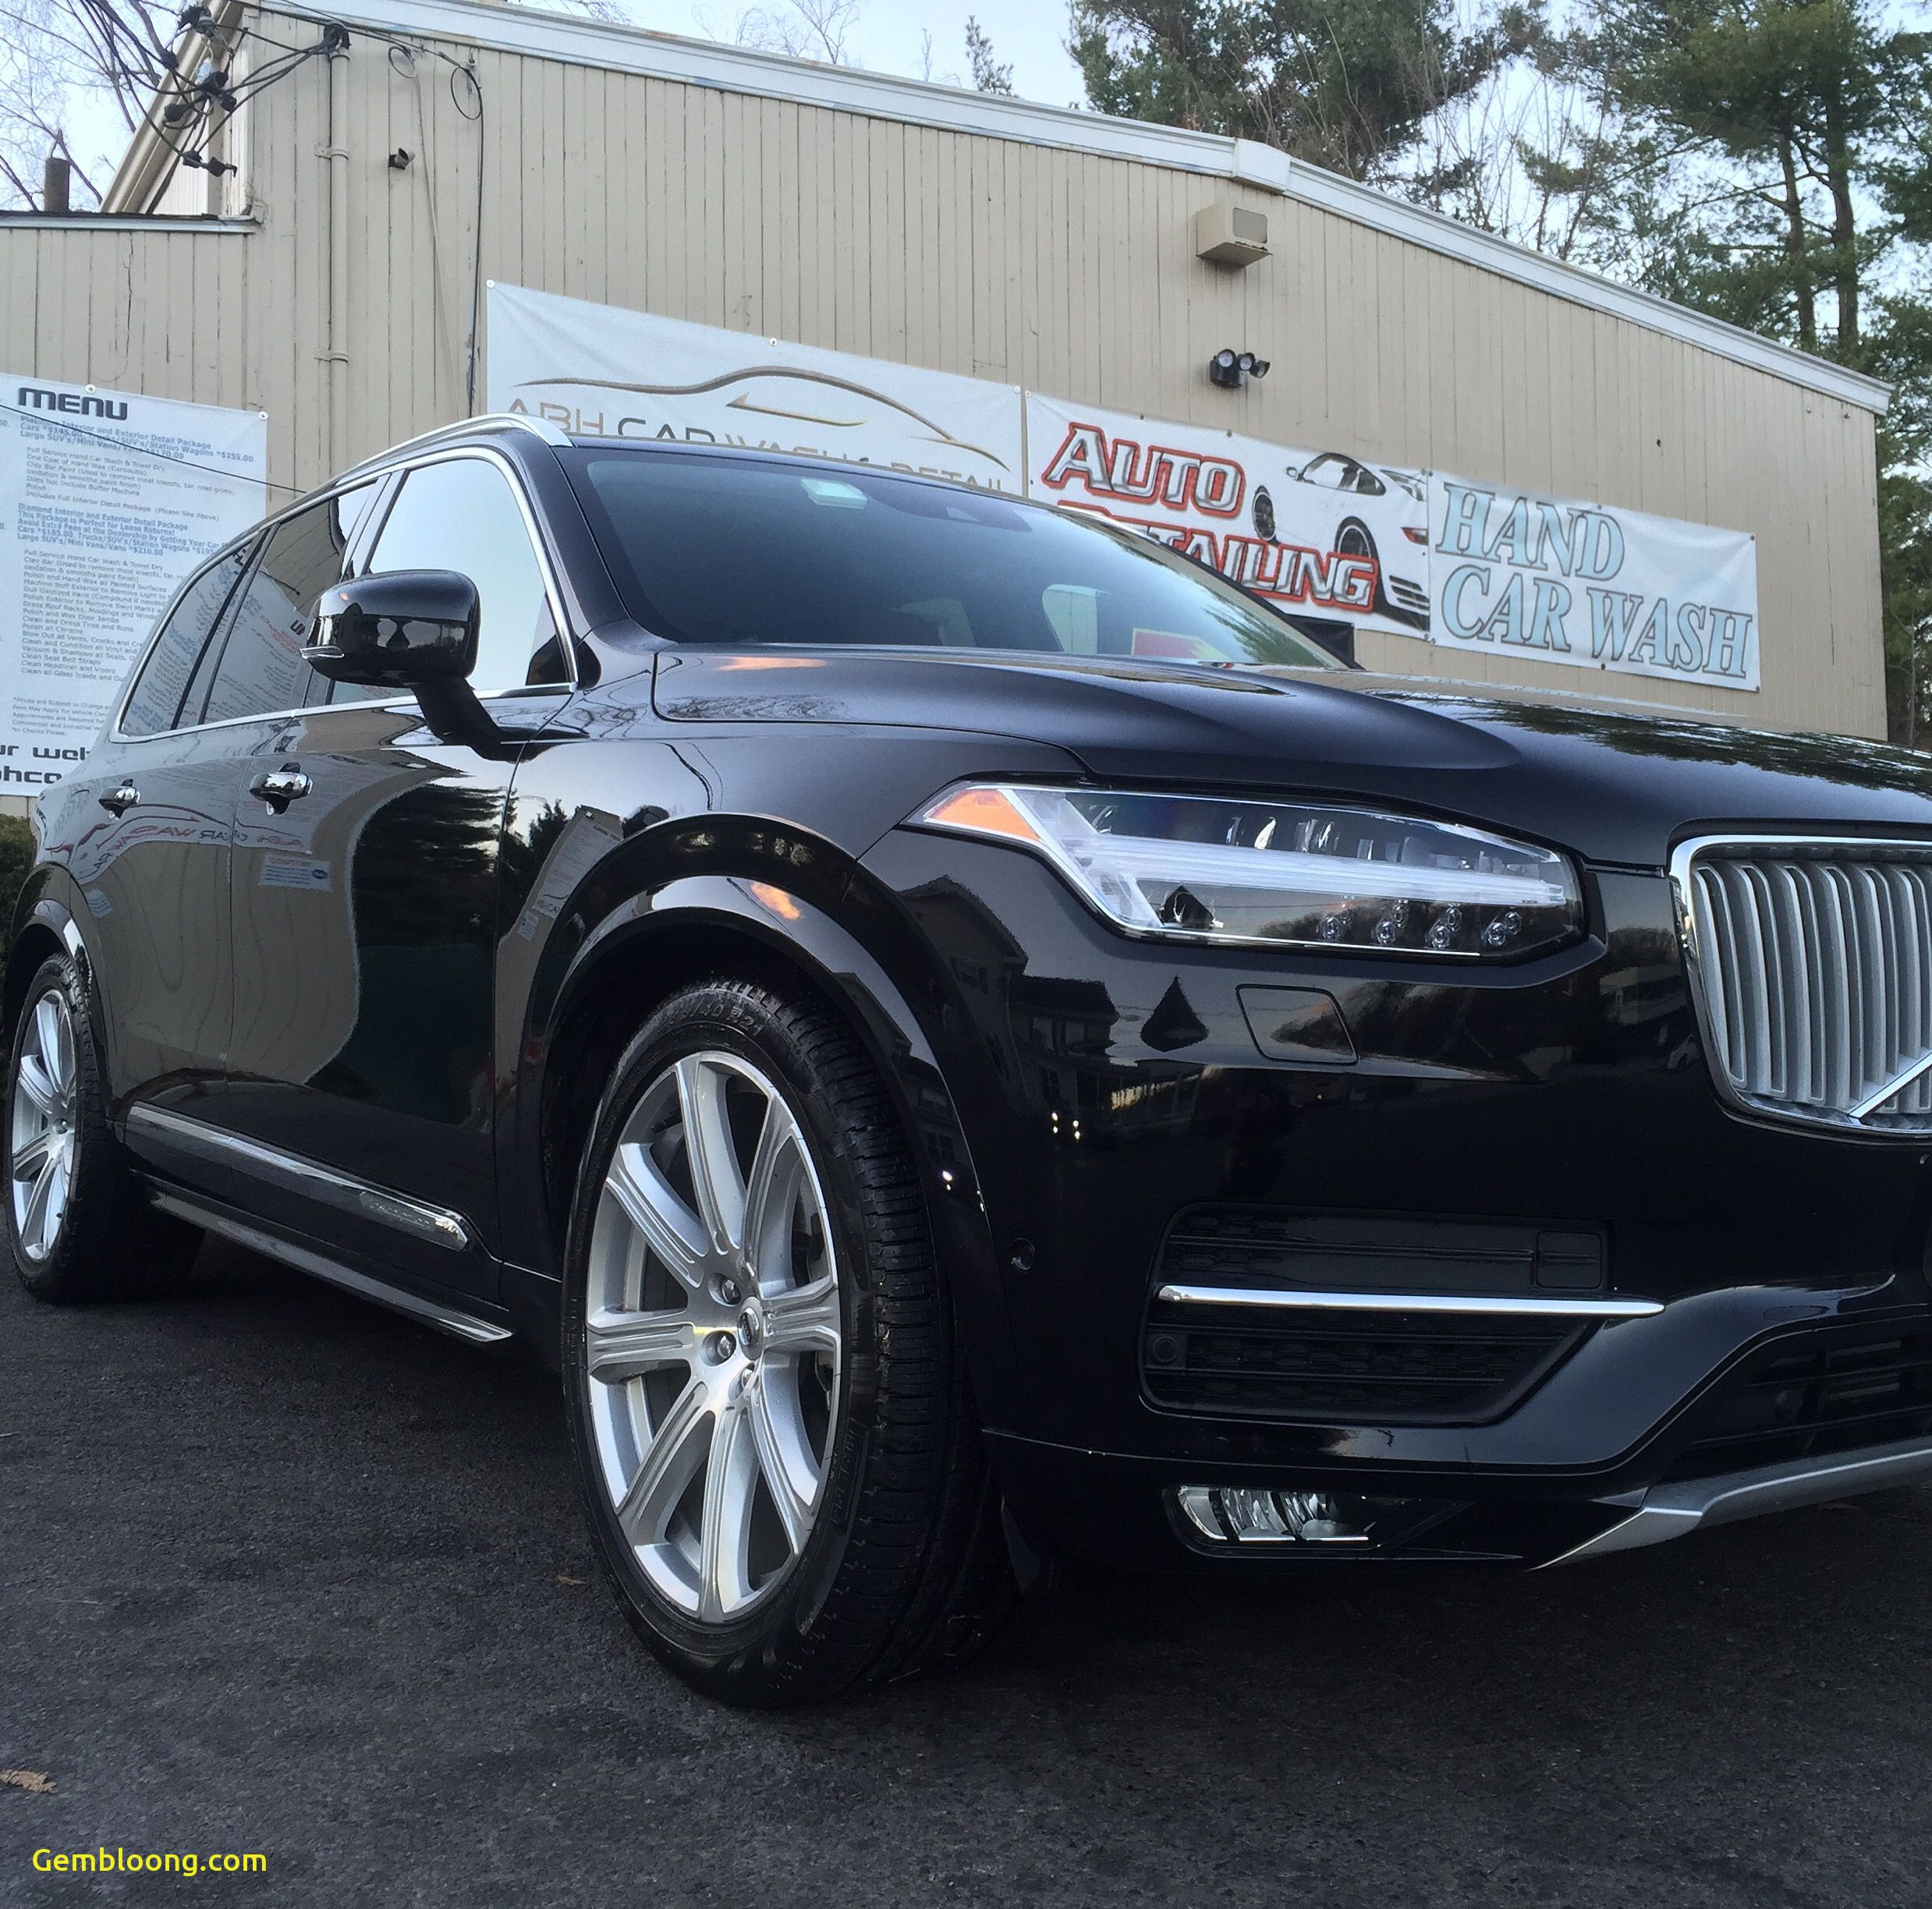 Edmunds Used Cars Best Of Hand Car Wash On A Volvo Xc90